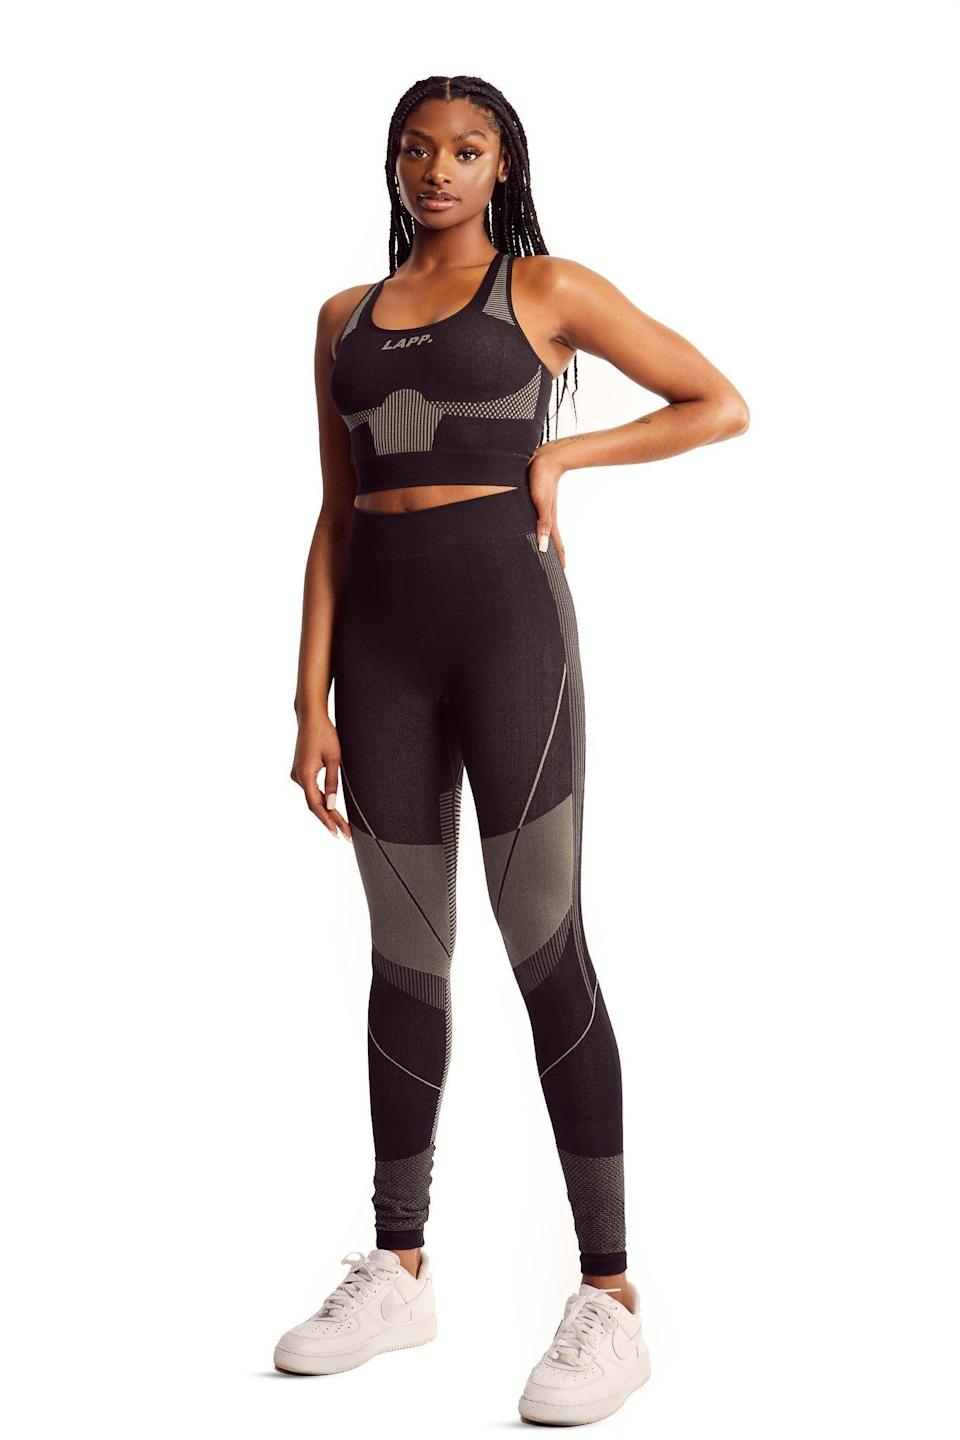 """<p><strong>LAPP </strong></p><p>lappthebrand.com</p><p><strong>£129.00</strong></p><p><a href=""""https://www.lappthebrand.com/collections/2020-leggings/products/black-seamless-legging?variant=32112835428442"""" rel=""""nofollow noopener"""" target=""""_blank"""" data-ylk=""""slk:Shop Now"""" class=""""link rapid-noclick-resp"""">Shop Now</a></p><p>Creative director <a href=""""https://www.harpersbazaar.com/fashion/models/a27042294/leomie-anderson-new-victorias-secret-angel/"""" rel=""""nofollow noopener"""" target=""""_blank"""" data-ylk=""""slk:Leomie Anderson"""" class=""""link rapid-noclick-resp"""">Leomie Anderson</a> jump-started her sportswear line in 2016 after building a community with her blog-turned-digital magazine that focused on empowering women. The Victoria's Secret Angel began posting articles centered on equipping young women with insight and knowledge for finding a voice when faced with unfair treatment, prejudice, and pressure. Since launching her first sportswear collection, focused on reclaiming the word <em>no, </em>the <em>Forbes </em>30 Under 30 entrepreneur has expanded her designs to include geometric cutout tops, figure-conforming leggings, and easy sweat suits. </p>"""